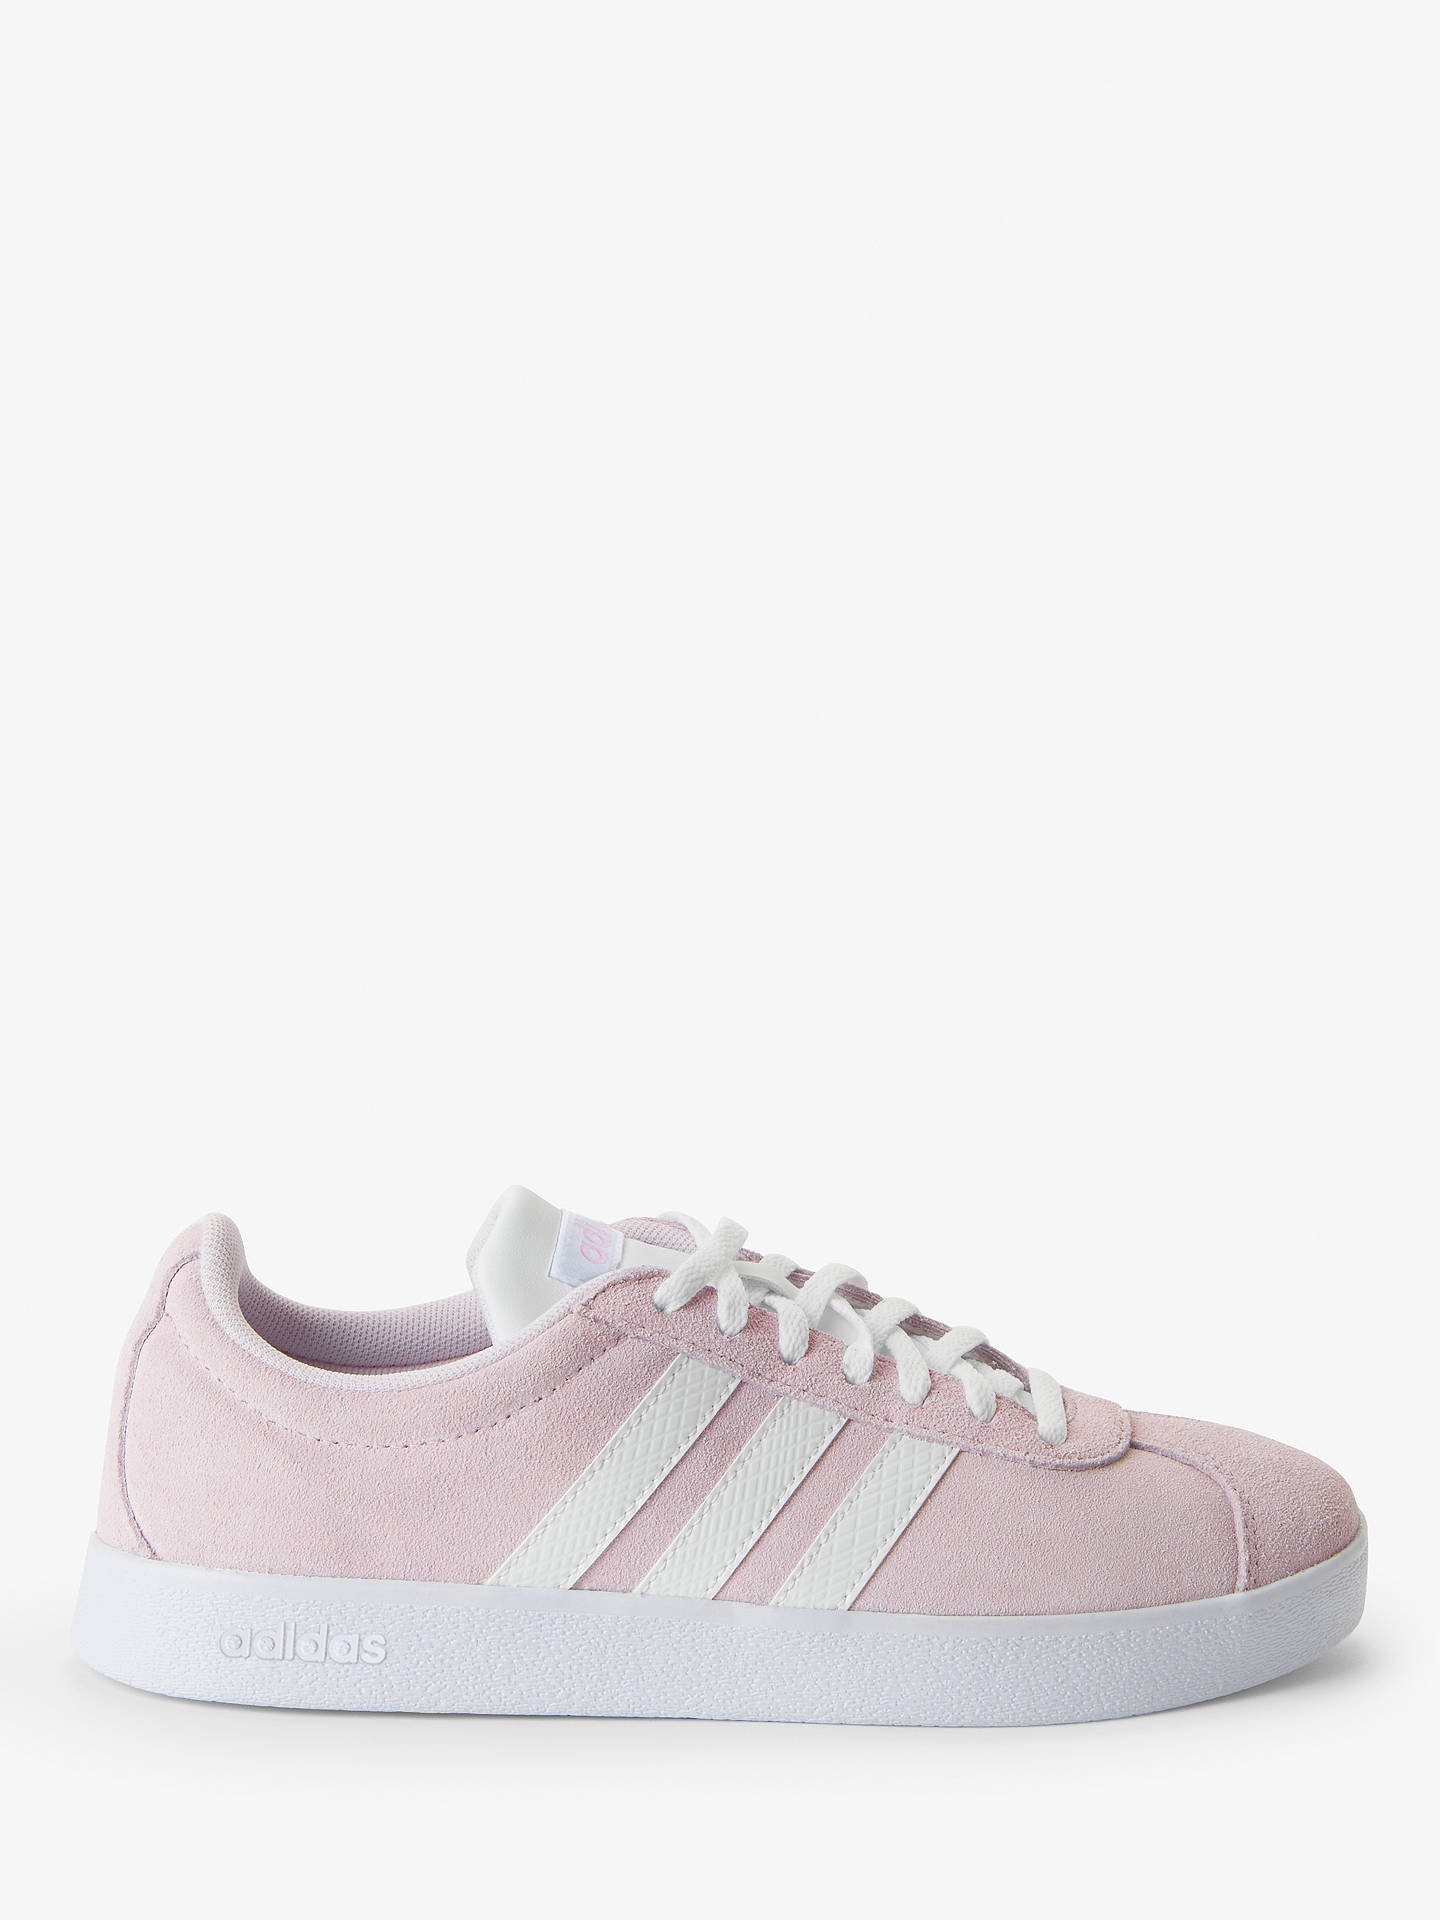 sale retailer dec34 f8ccc Buy adidas VL 2.0 Court Women s Trainers, Aero Pink White, 4 Online at ...